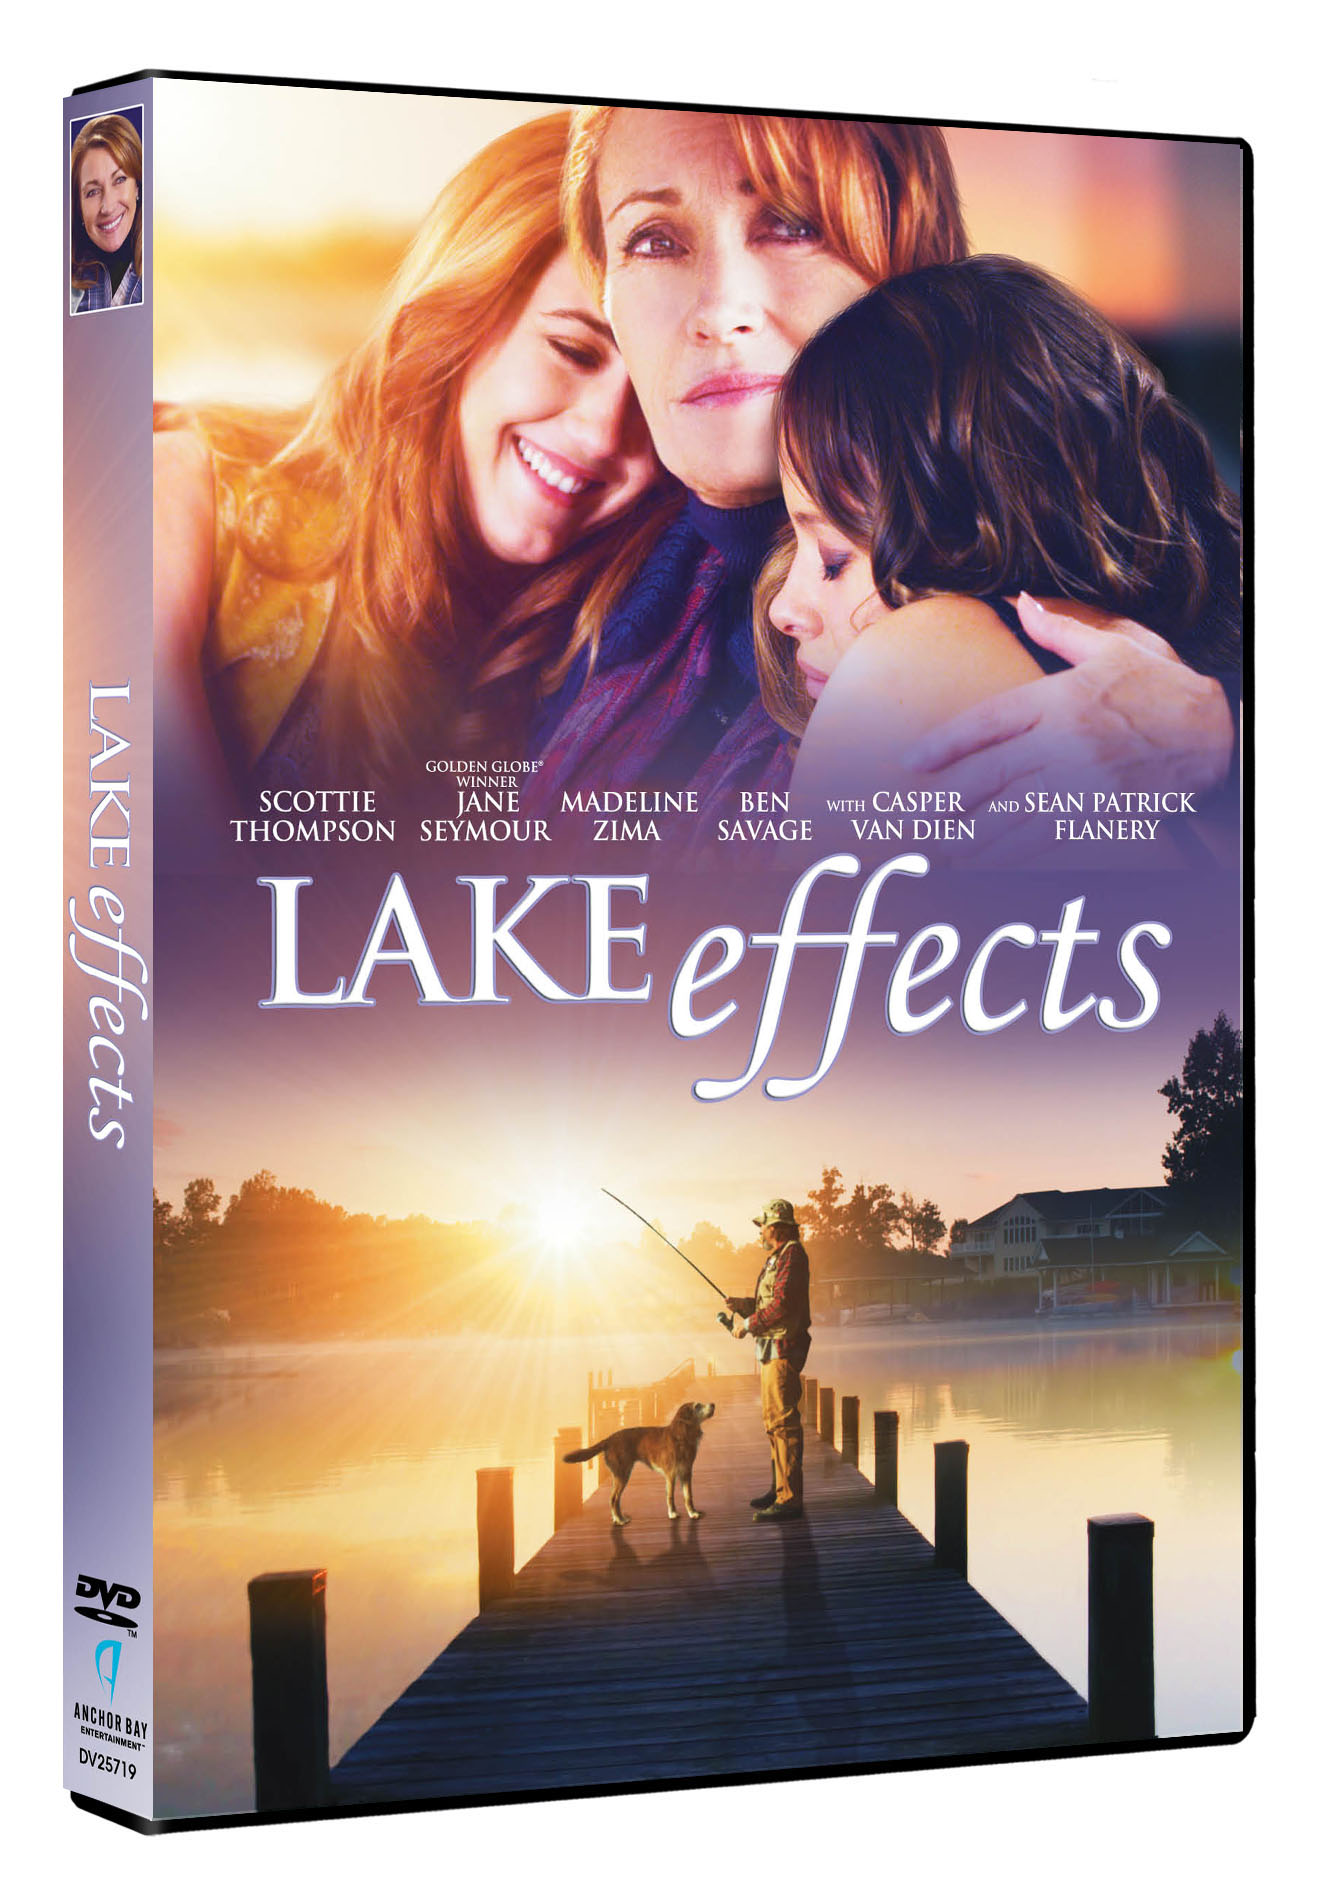 Lake Effects, definite chick-flick, looks great!